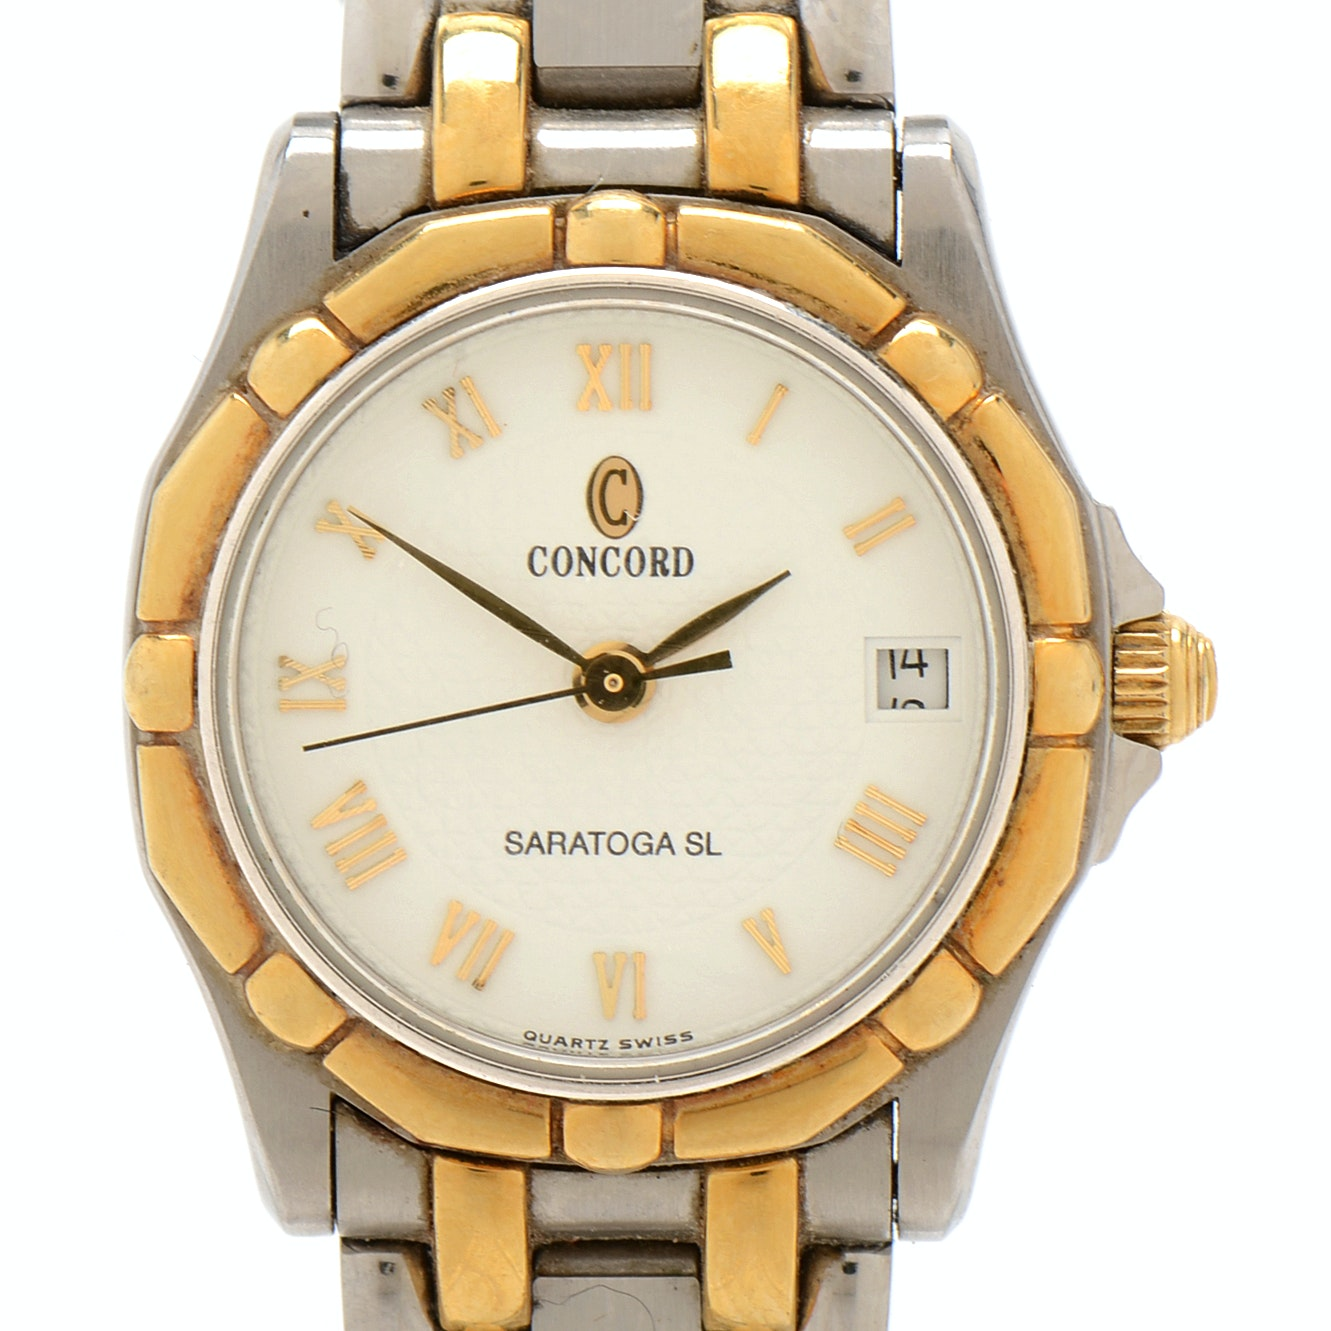 Concord Saratoga 18K Yellow Gold and Stainless Steel Wristwatch